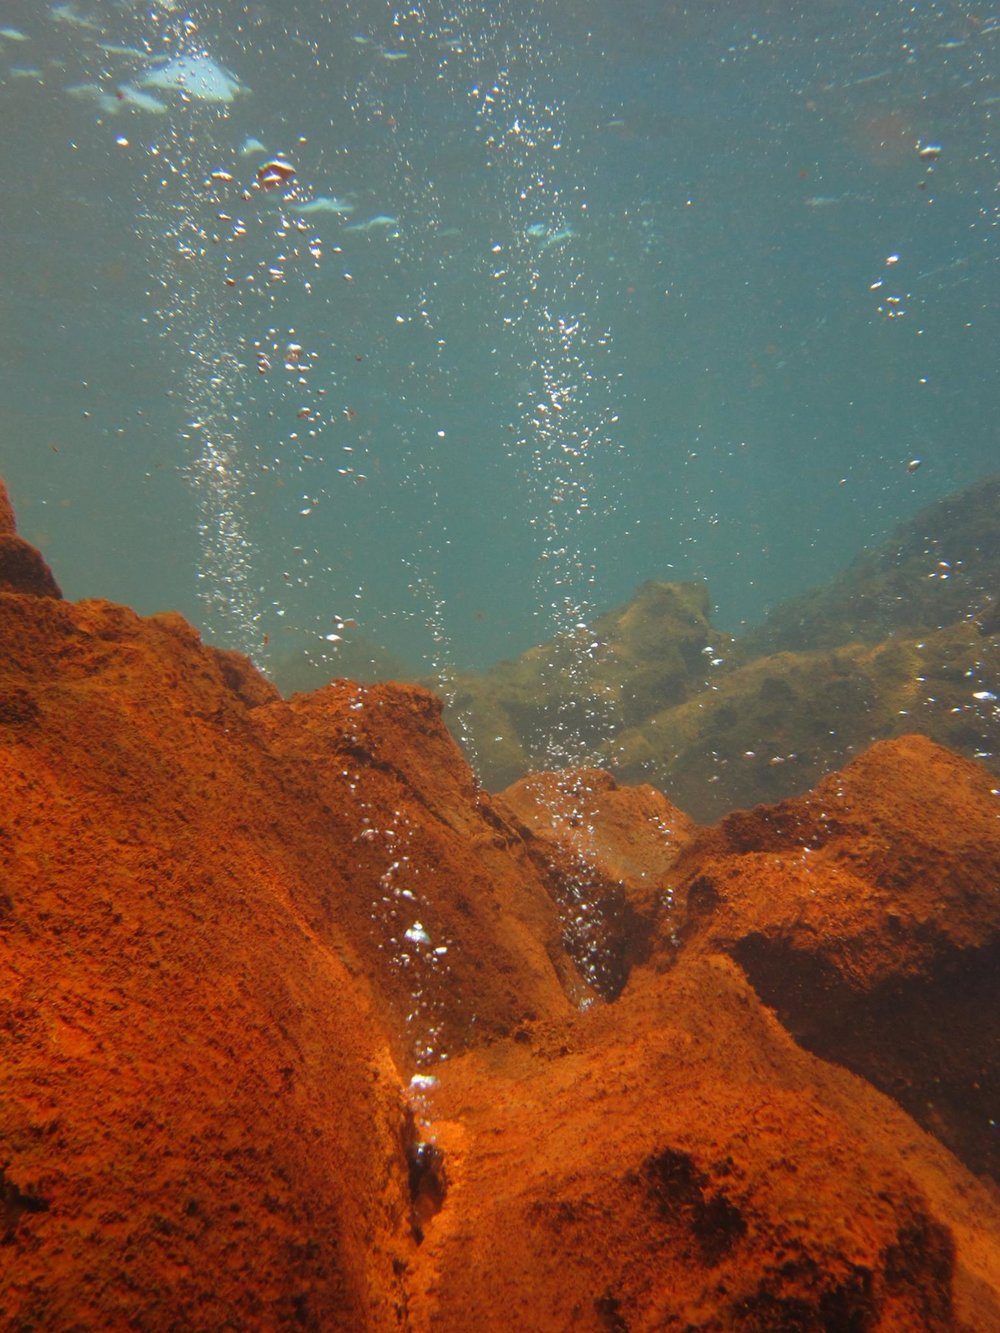 Indonesia - Surveyed the Bangka National Marine Park, Kurimunjawa National Park, and Sangihe Islands for a scientific expedition. Visited Mahangetang 'underwater volcano' (actually a CO2 seep, pictured).  Driectly where the CO2 gas was bubbling out was red and fuzzy like in the picture, but there were nice corals just off the seep which was surprising.